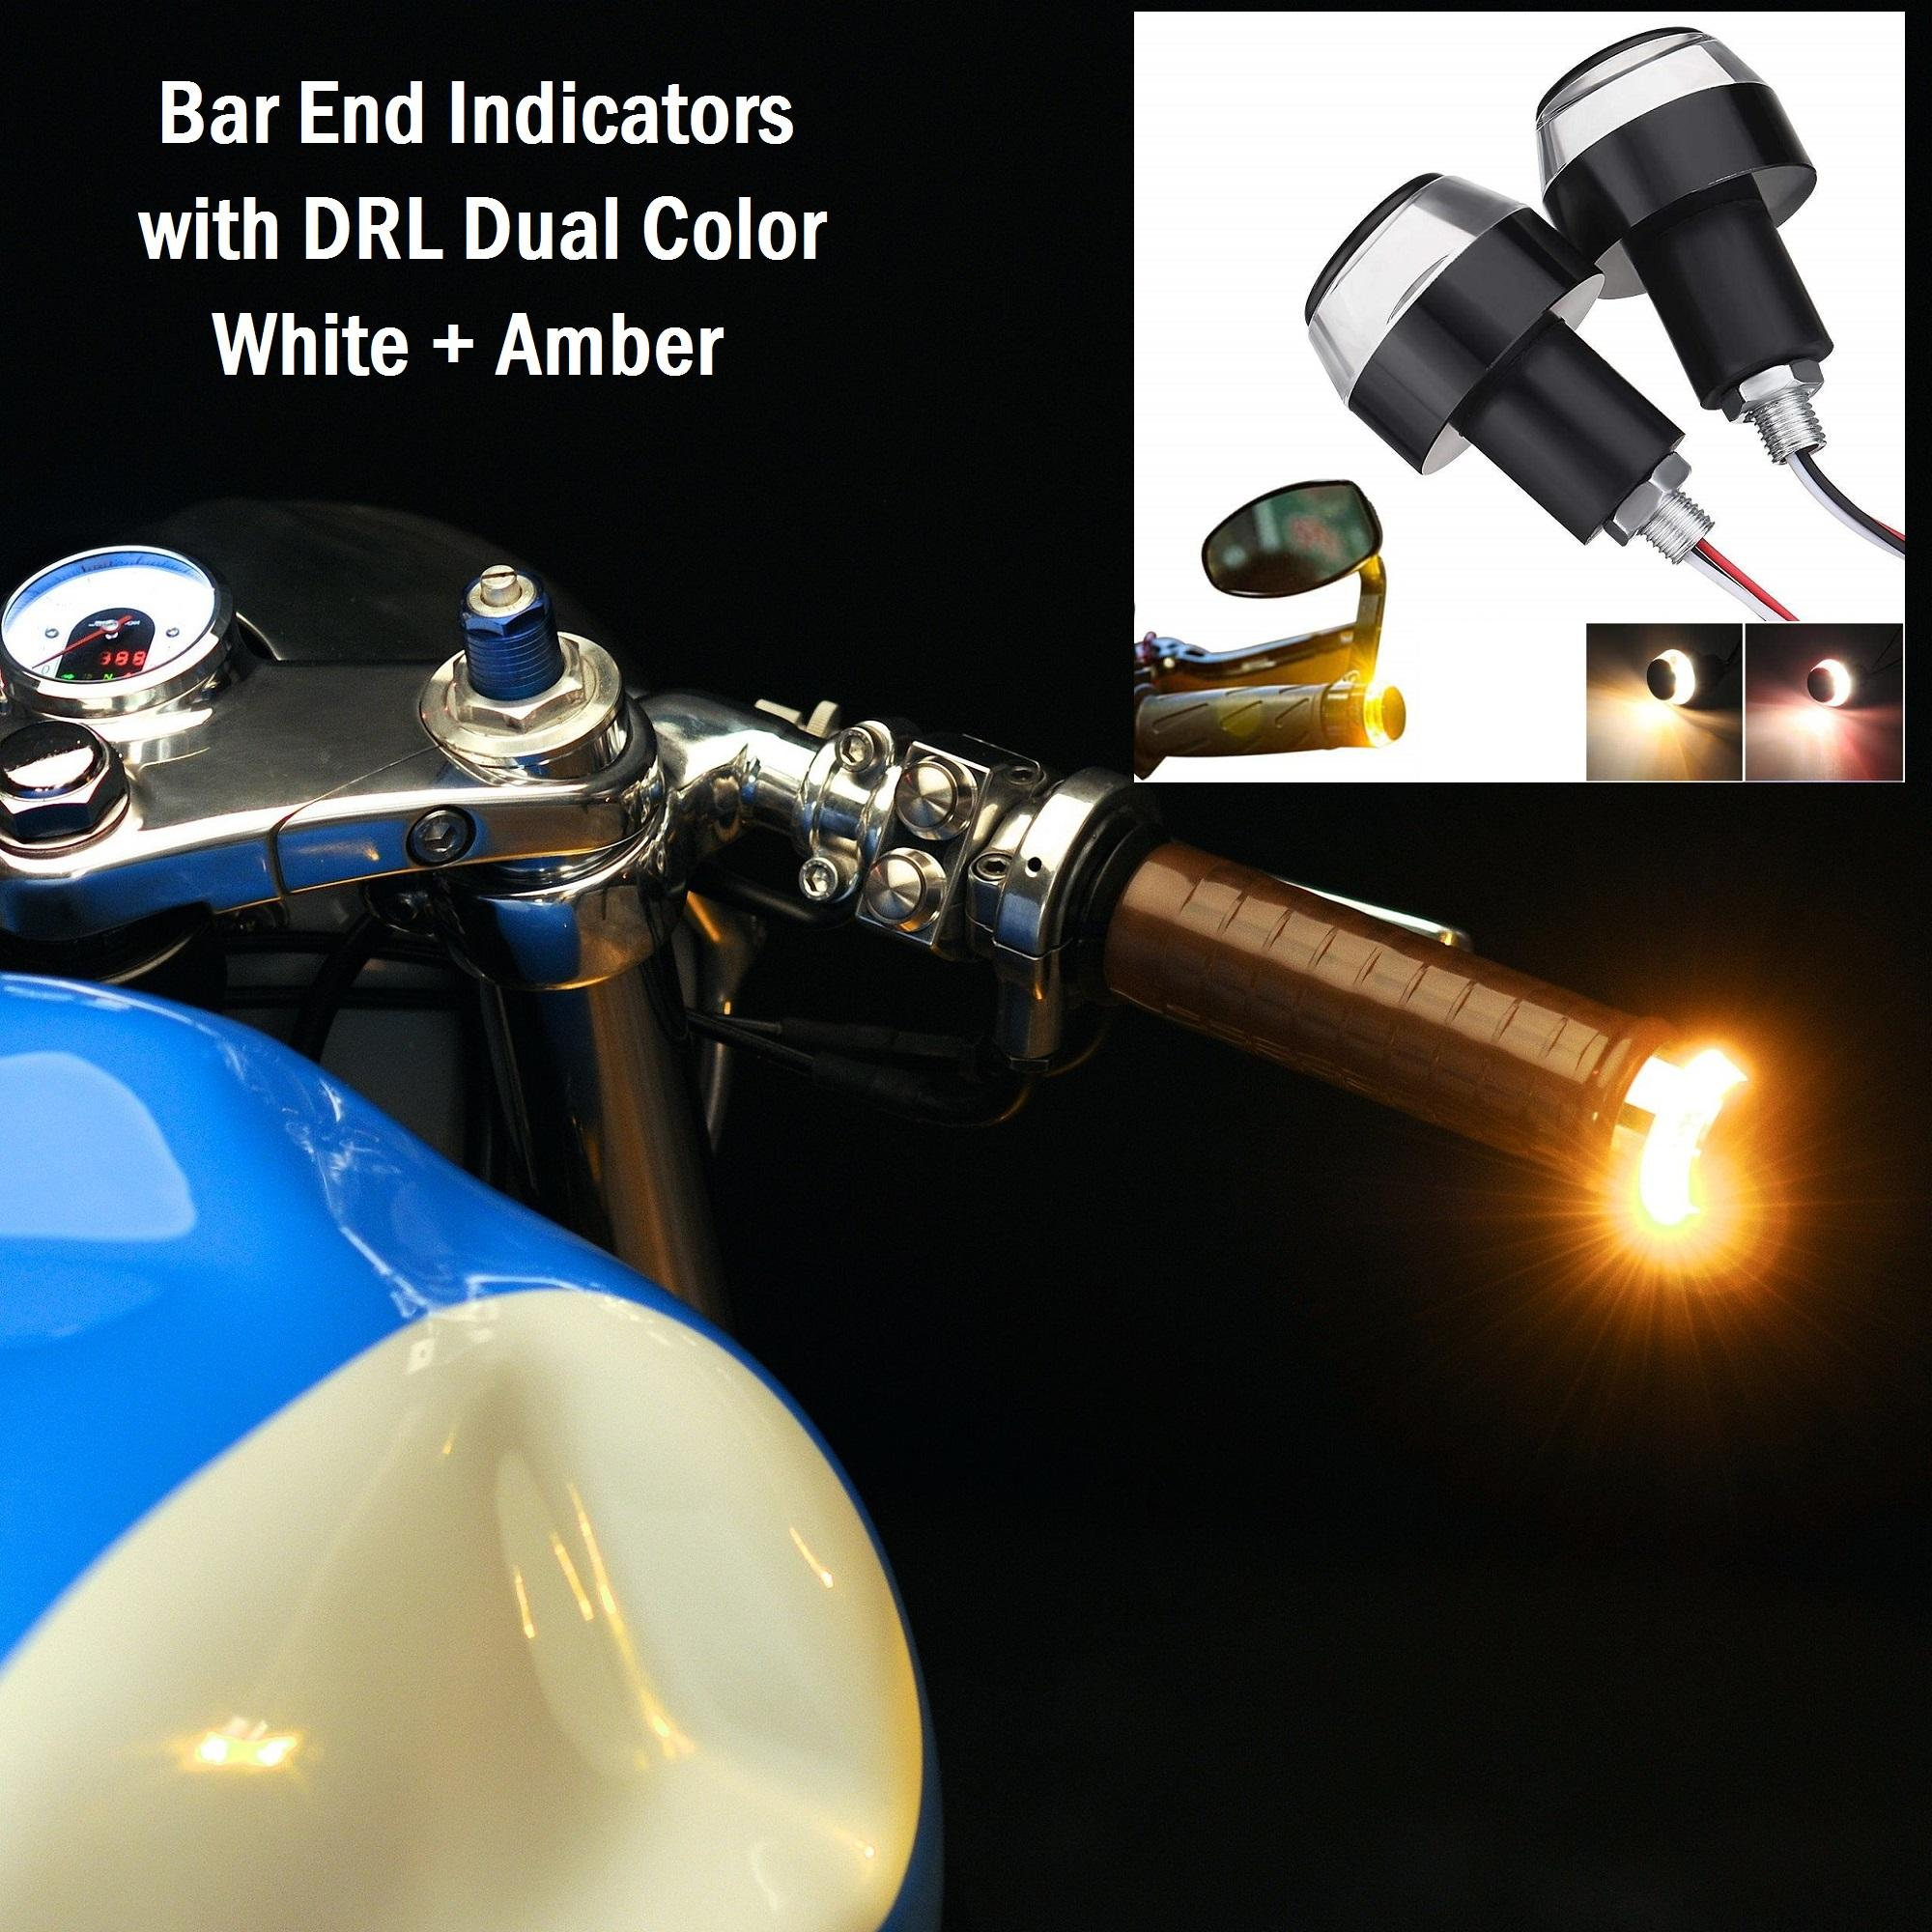 Motorcycle Parts For Sale Accessories Online Brands Diy Eliminate Guages Headlight Signal Harness Switch 600rrnet Bar End Indicators Drl Dual Color Handle Grip Led Indicator Turn Lights